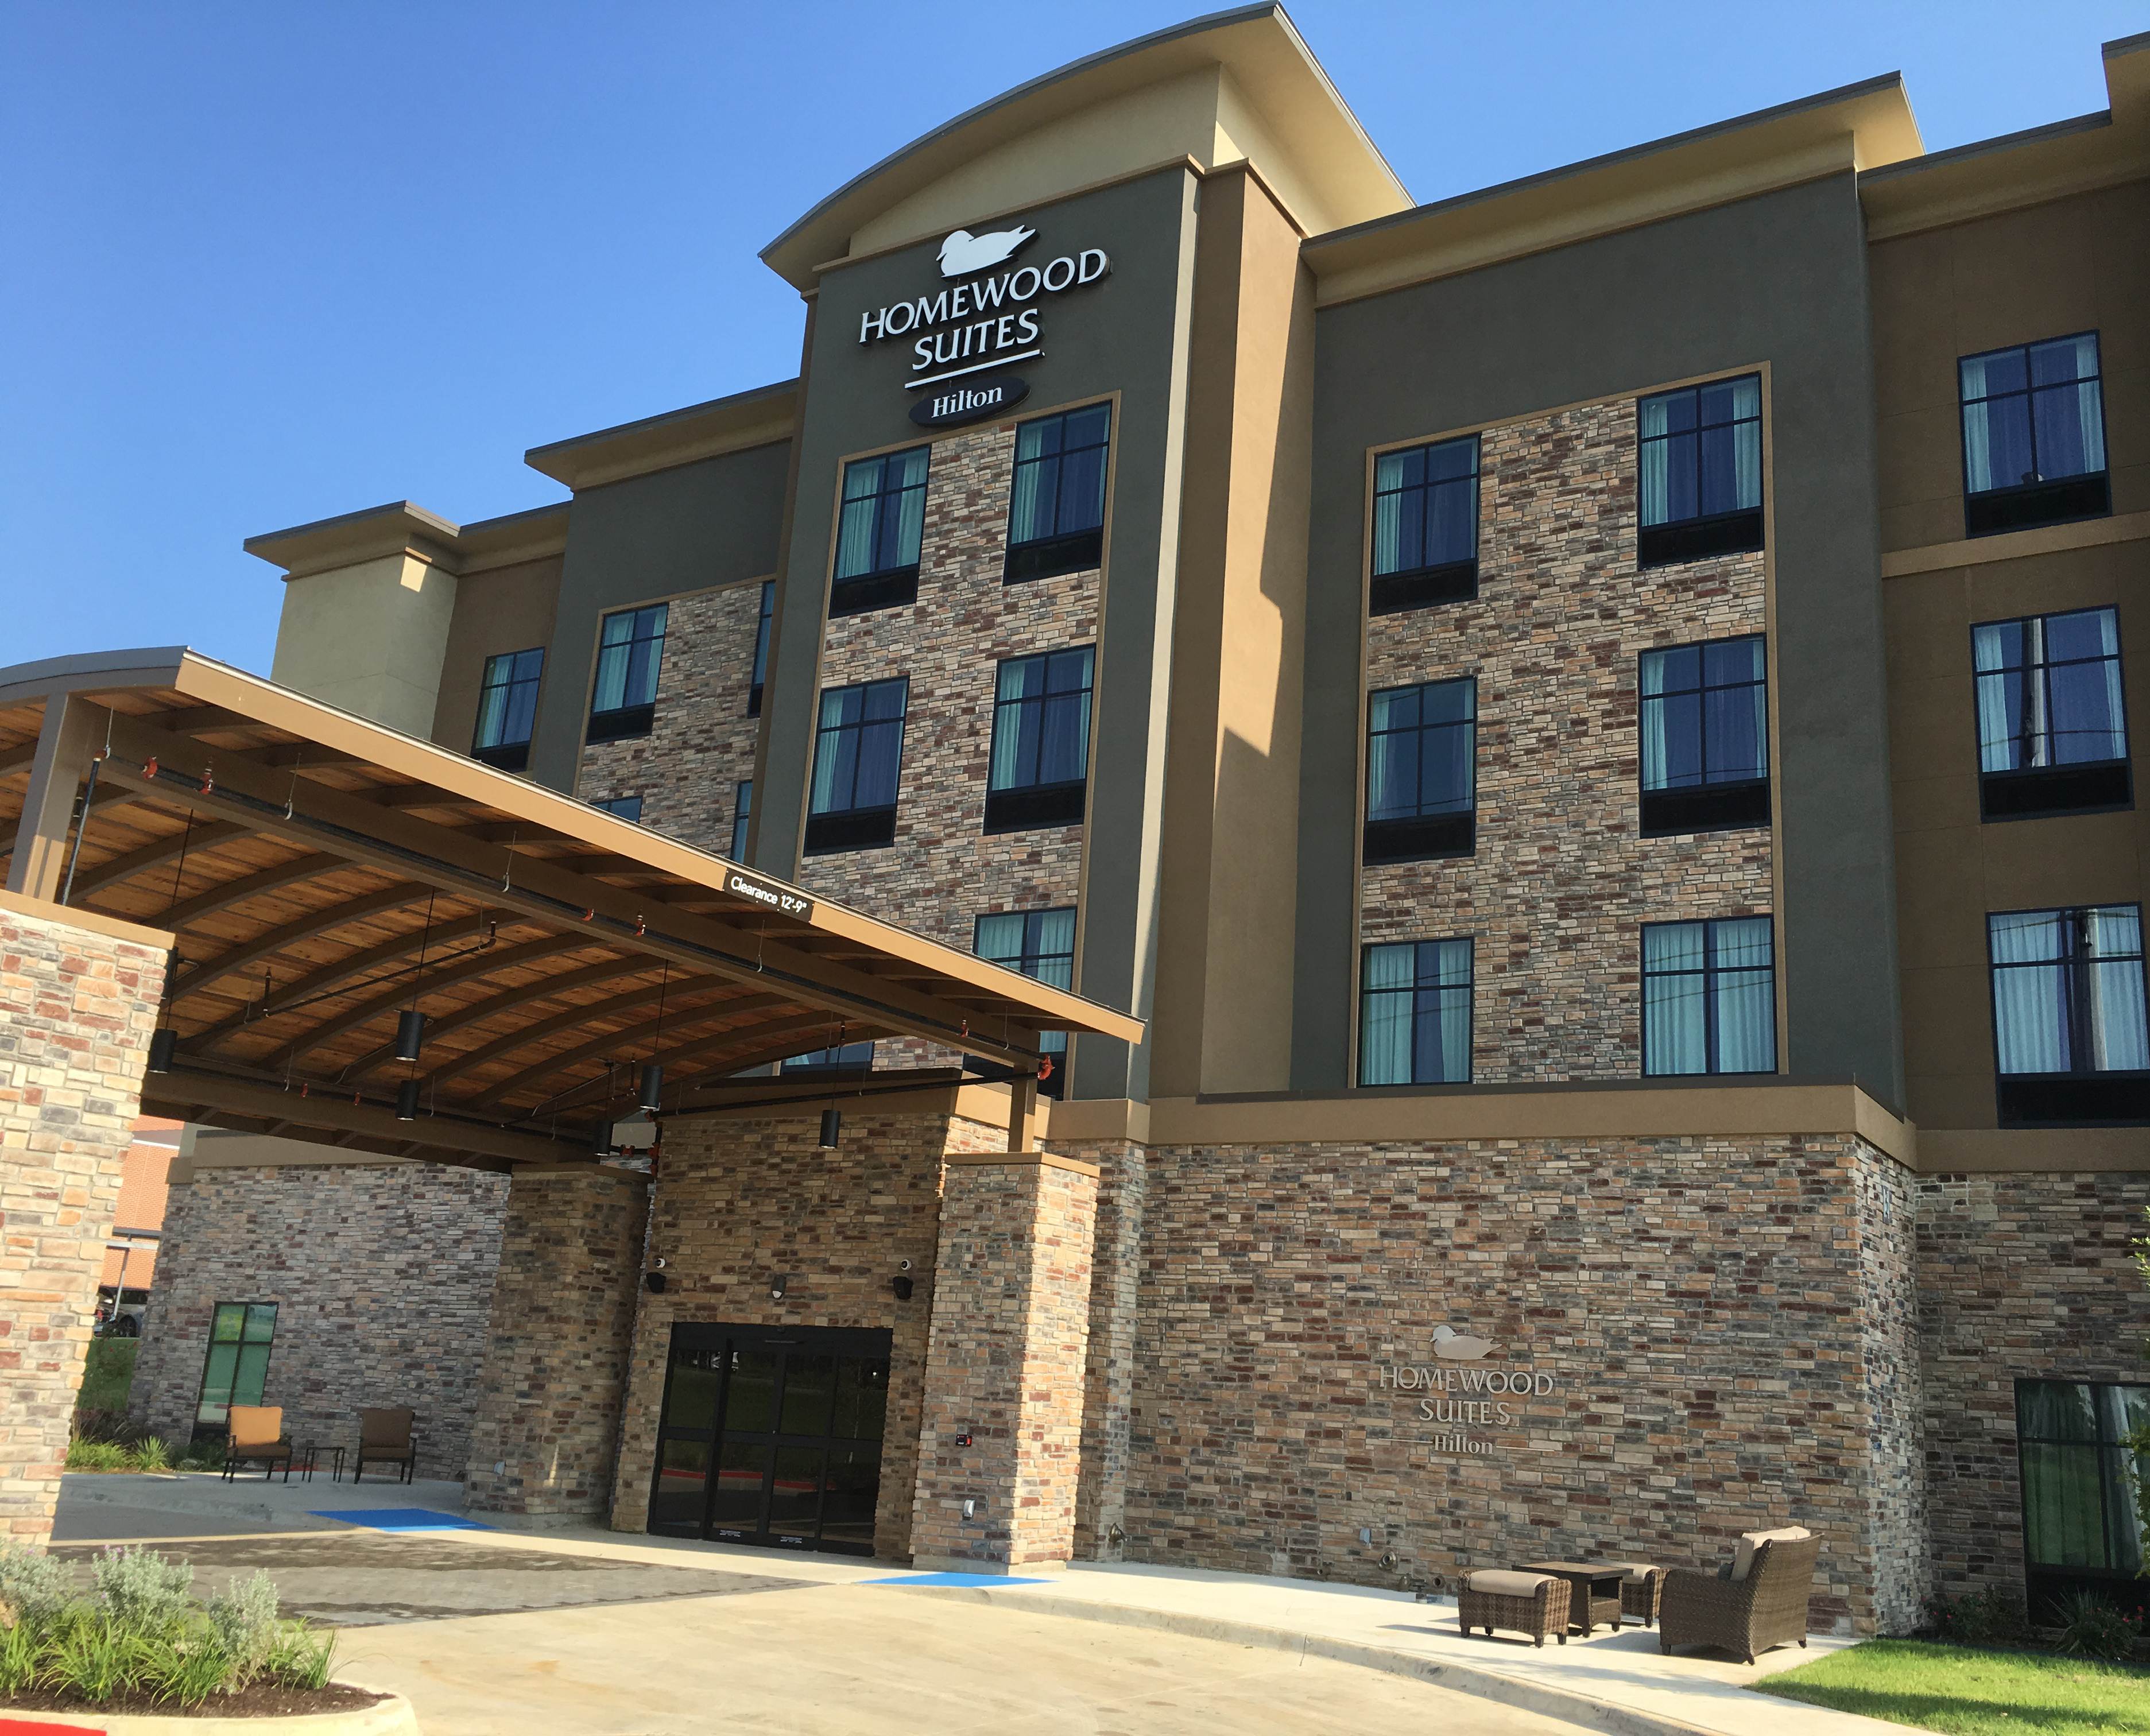 Homewood Suites By Hilton Debuts New Hotel In Fort Worth Area